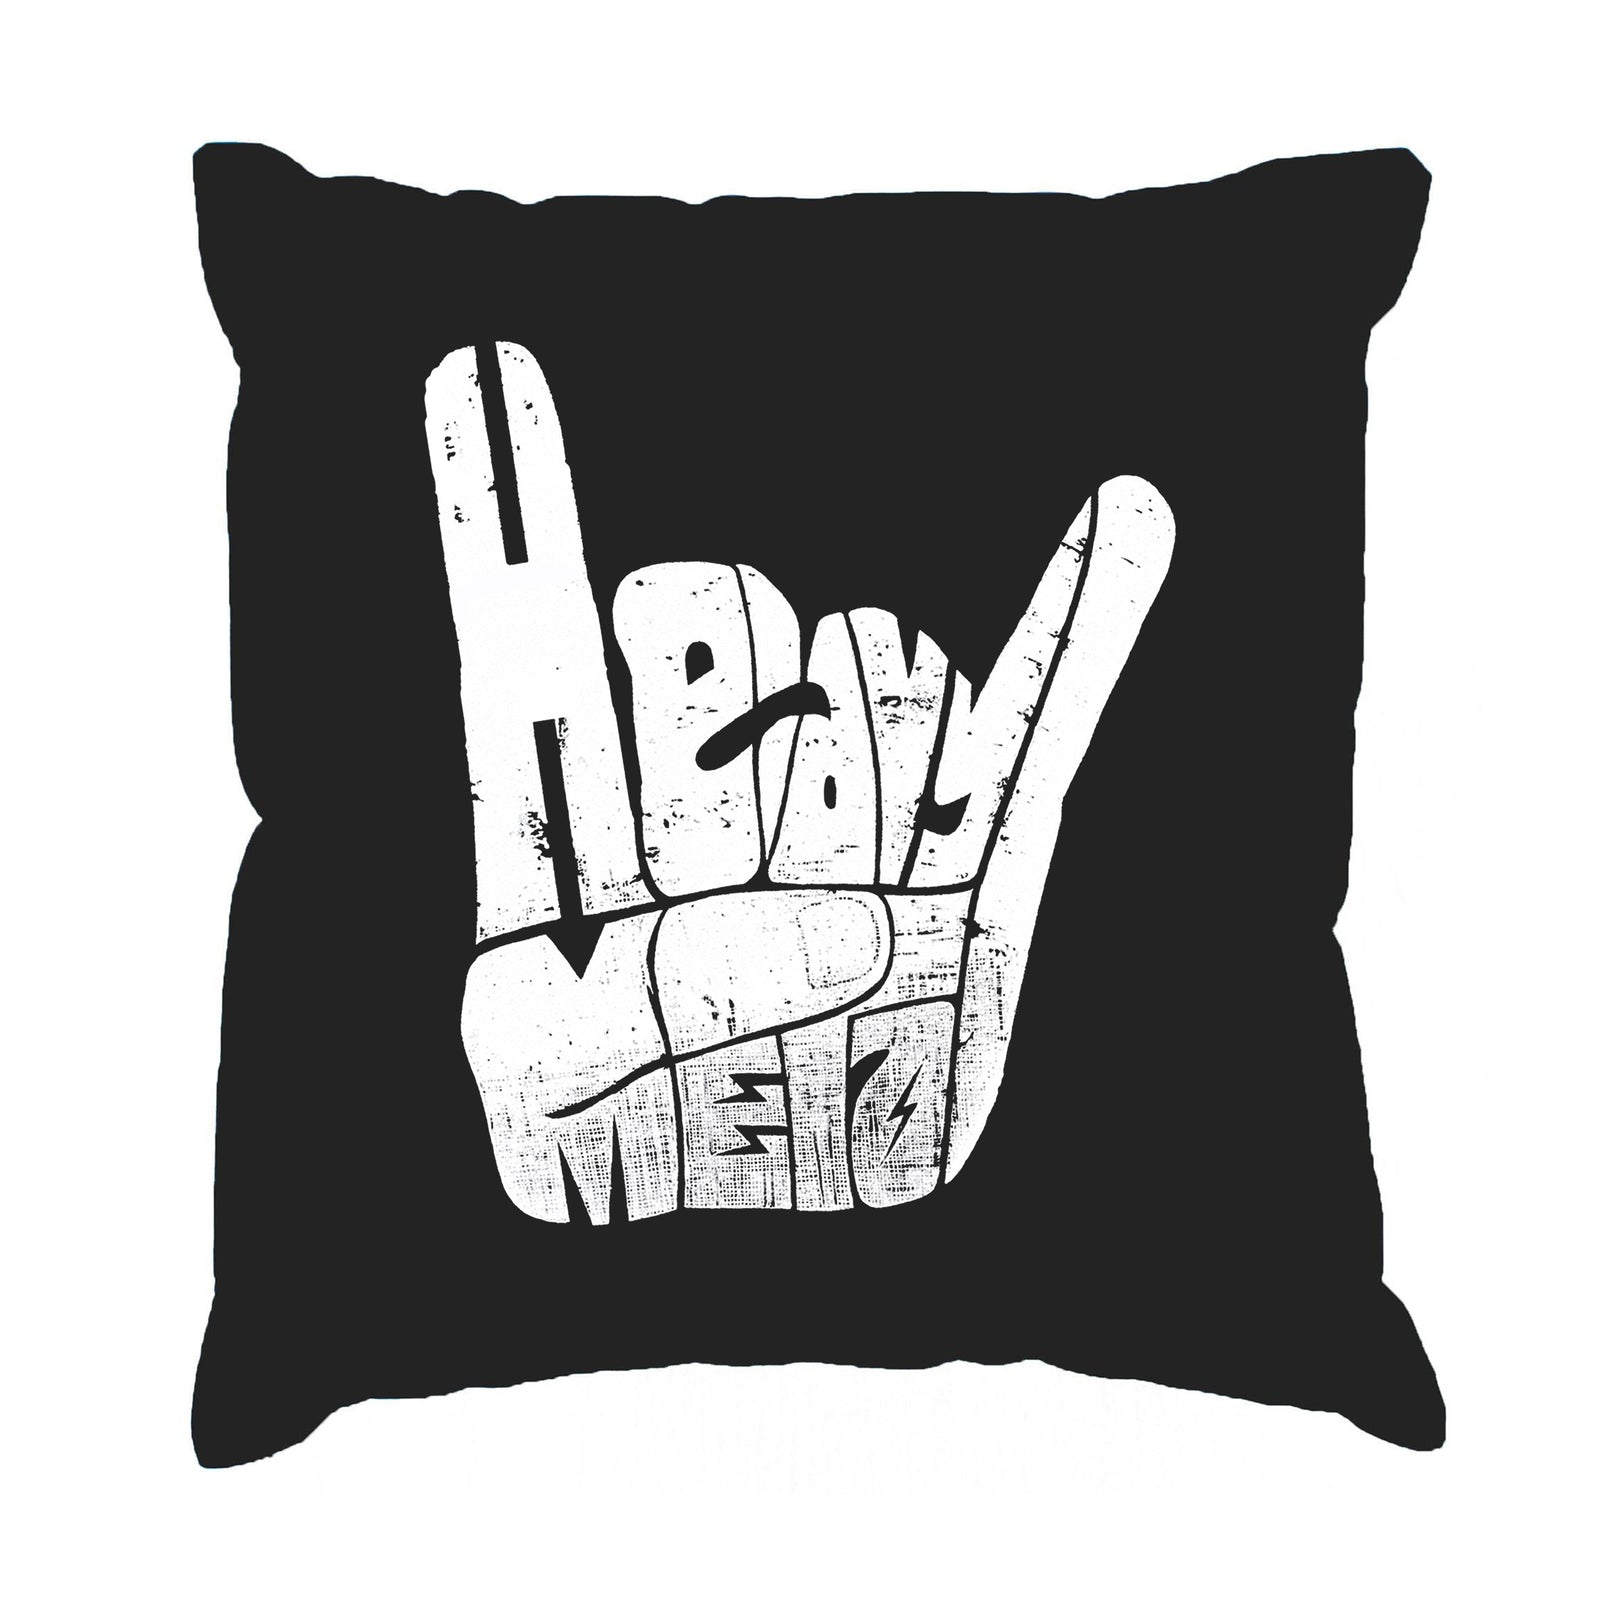 Throw Pillow Cover - Heavy Metal